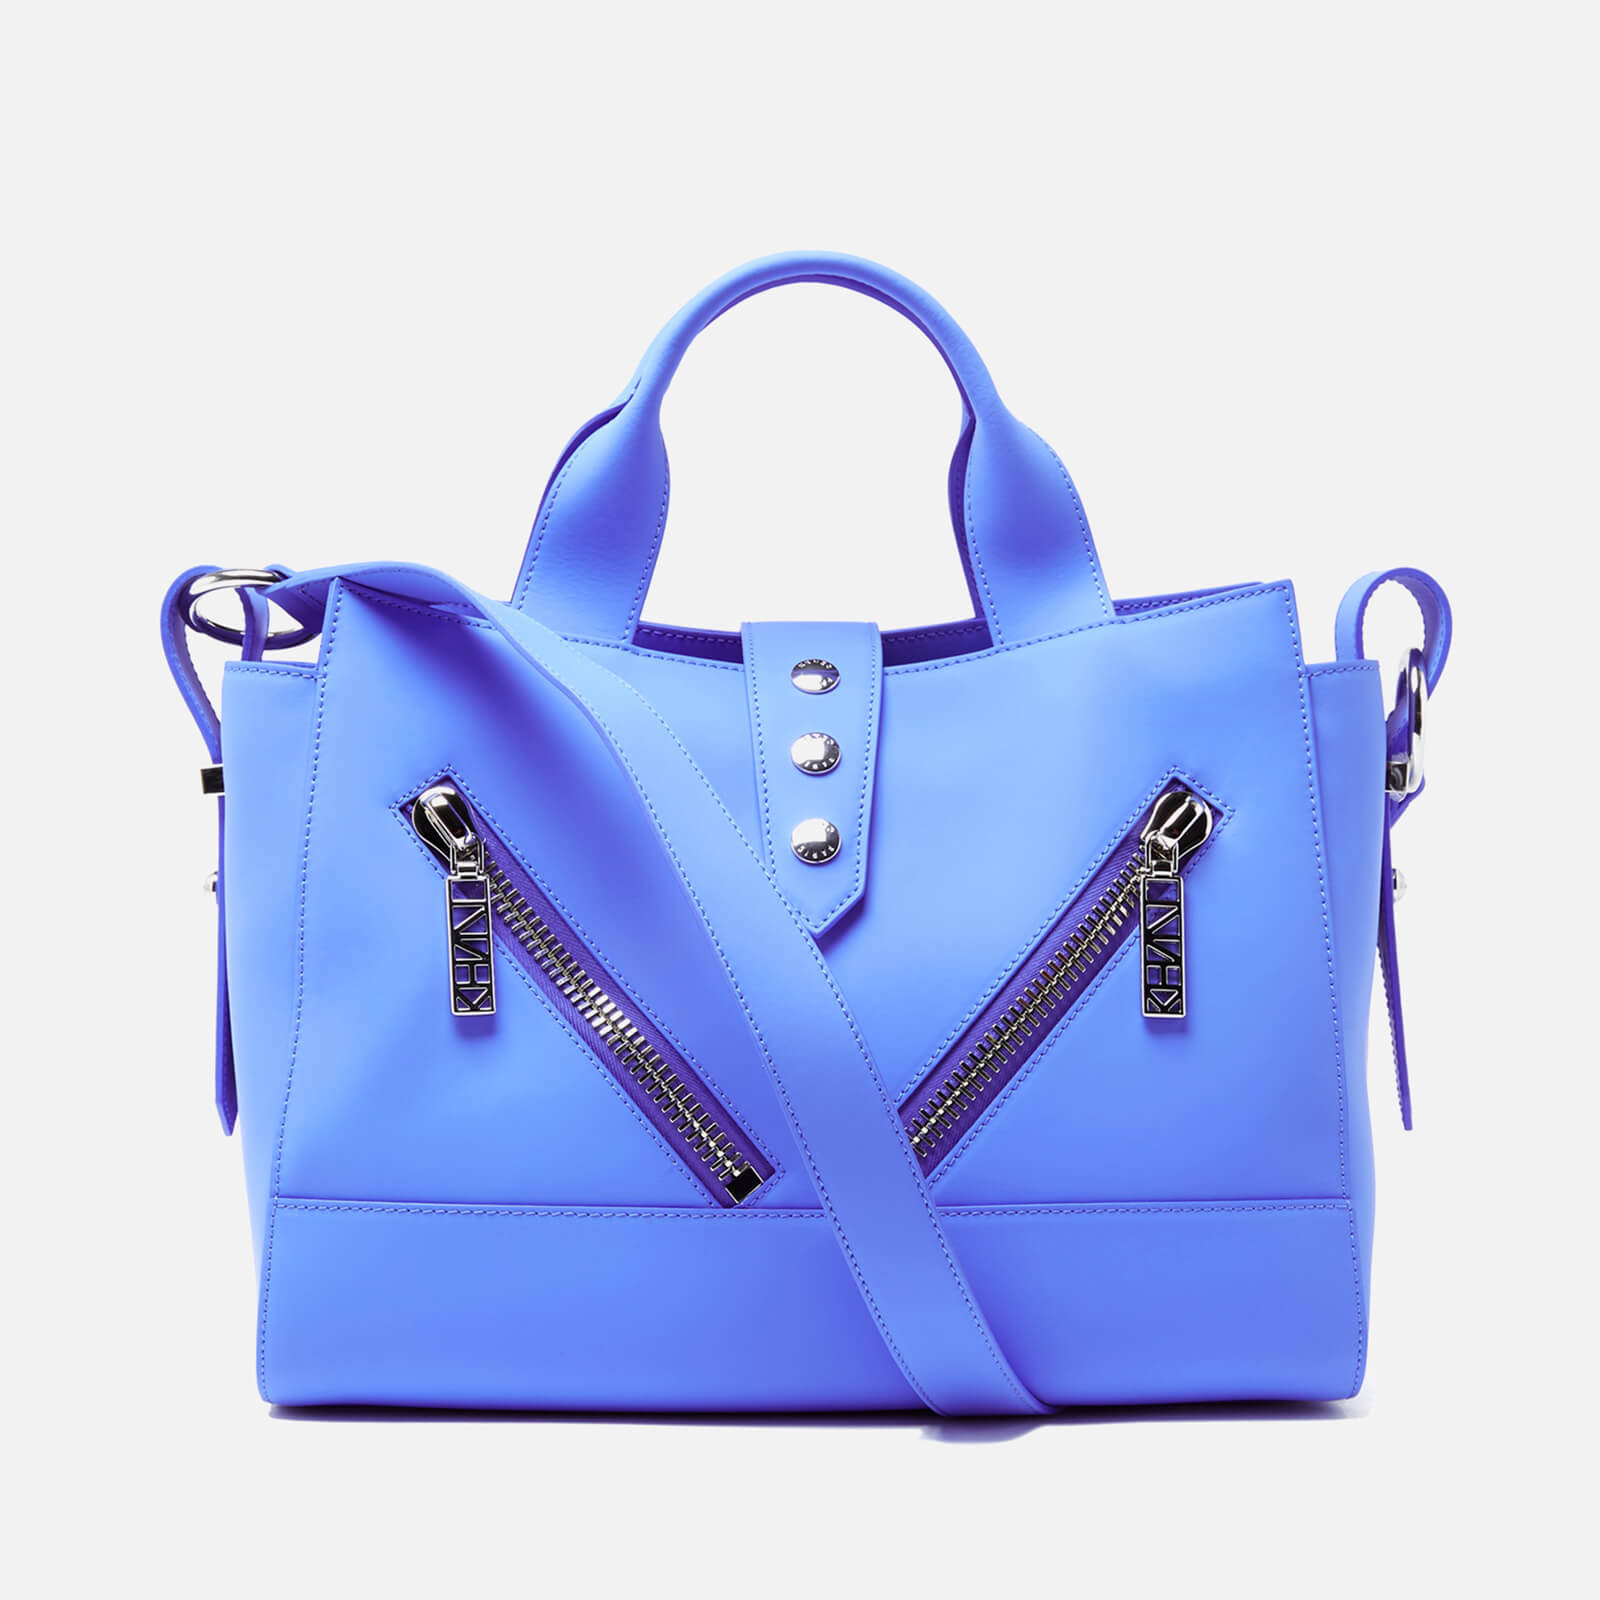 729b296f50 KENZO Women's Kalifornia Medium Tote Bag - Blue - Free UK Delivery over £50